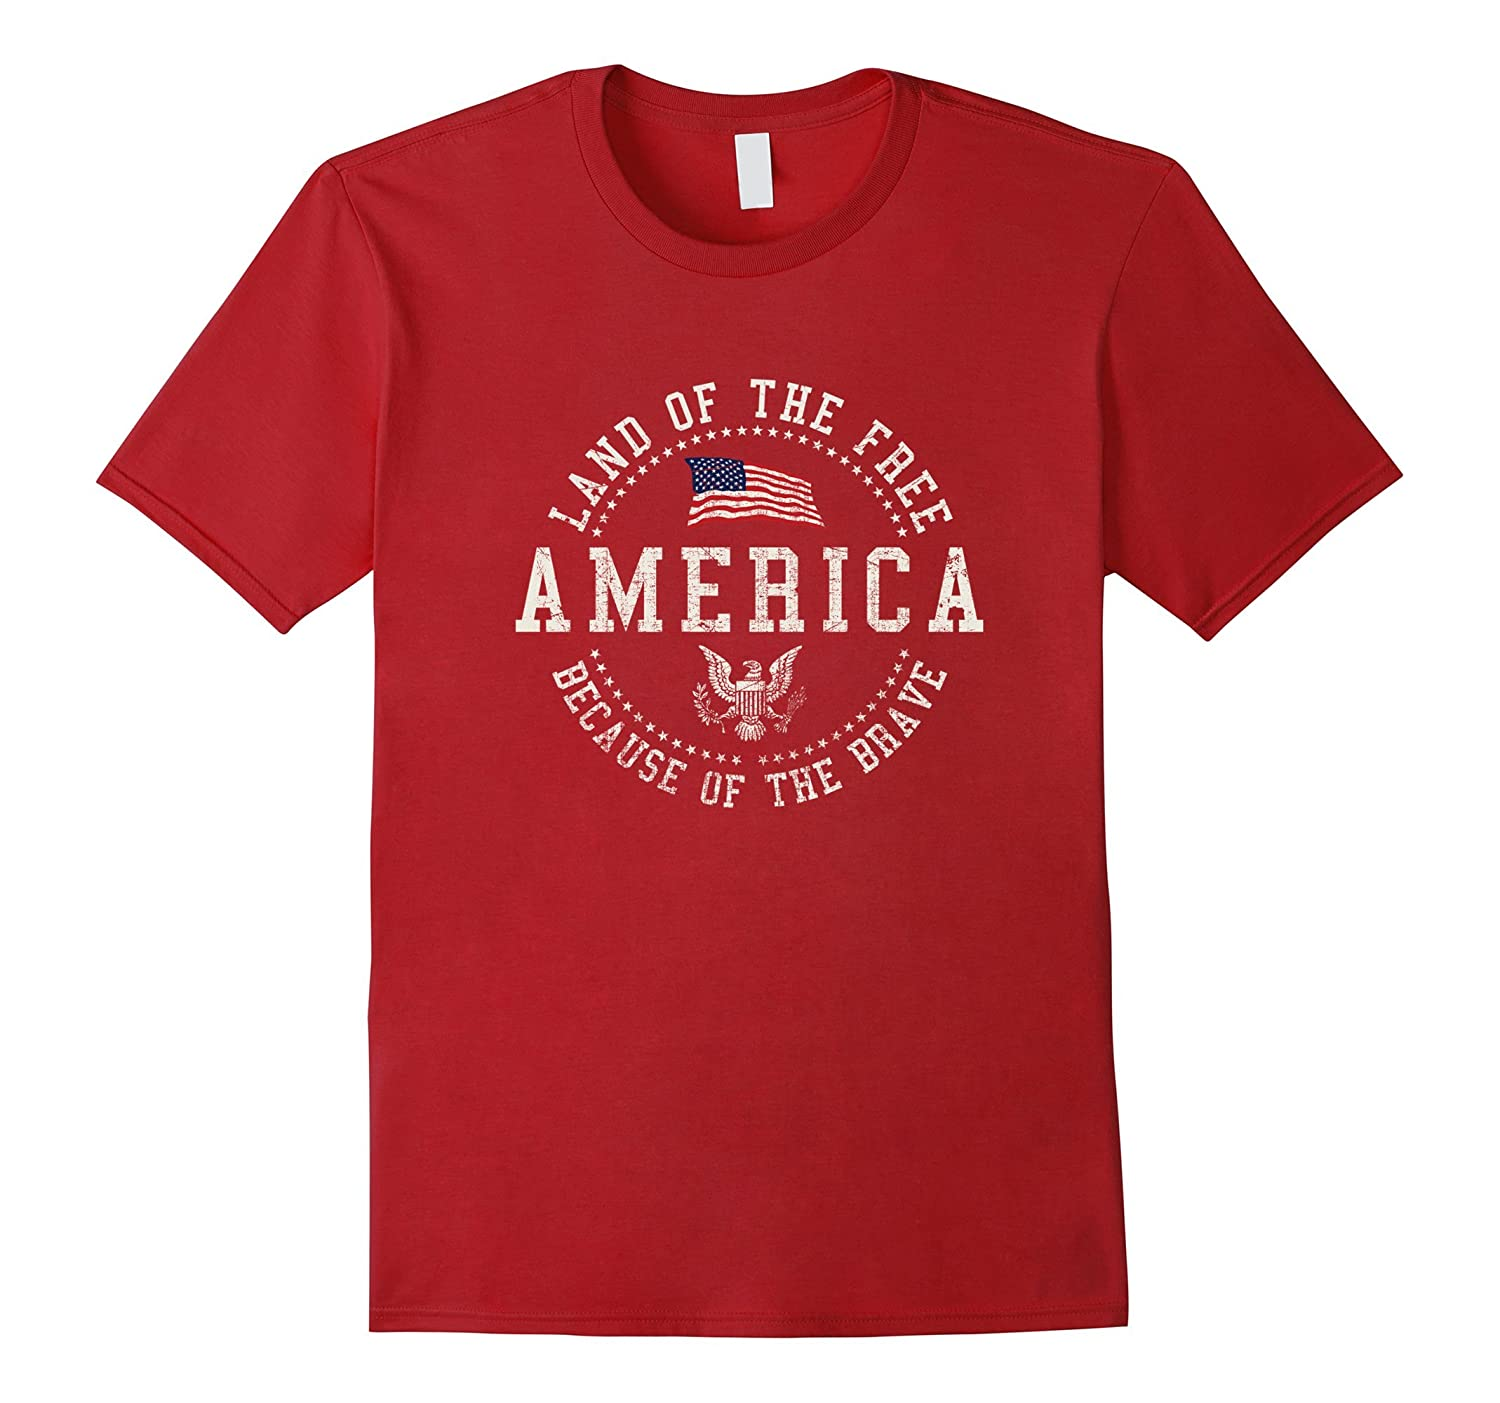 America 1776 Land Of The Free Vintage T-shirt-Vaci